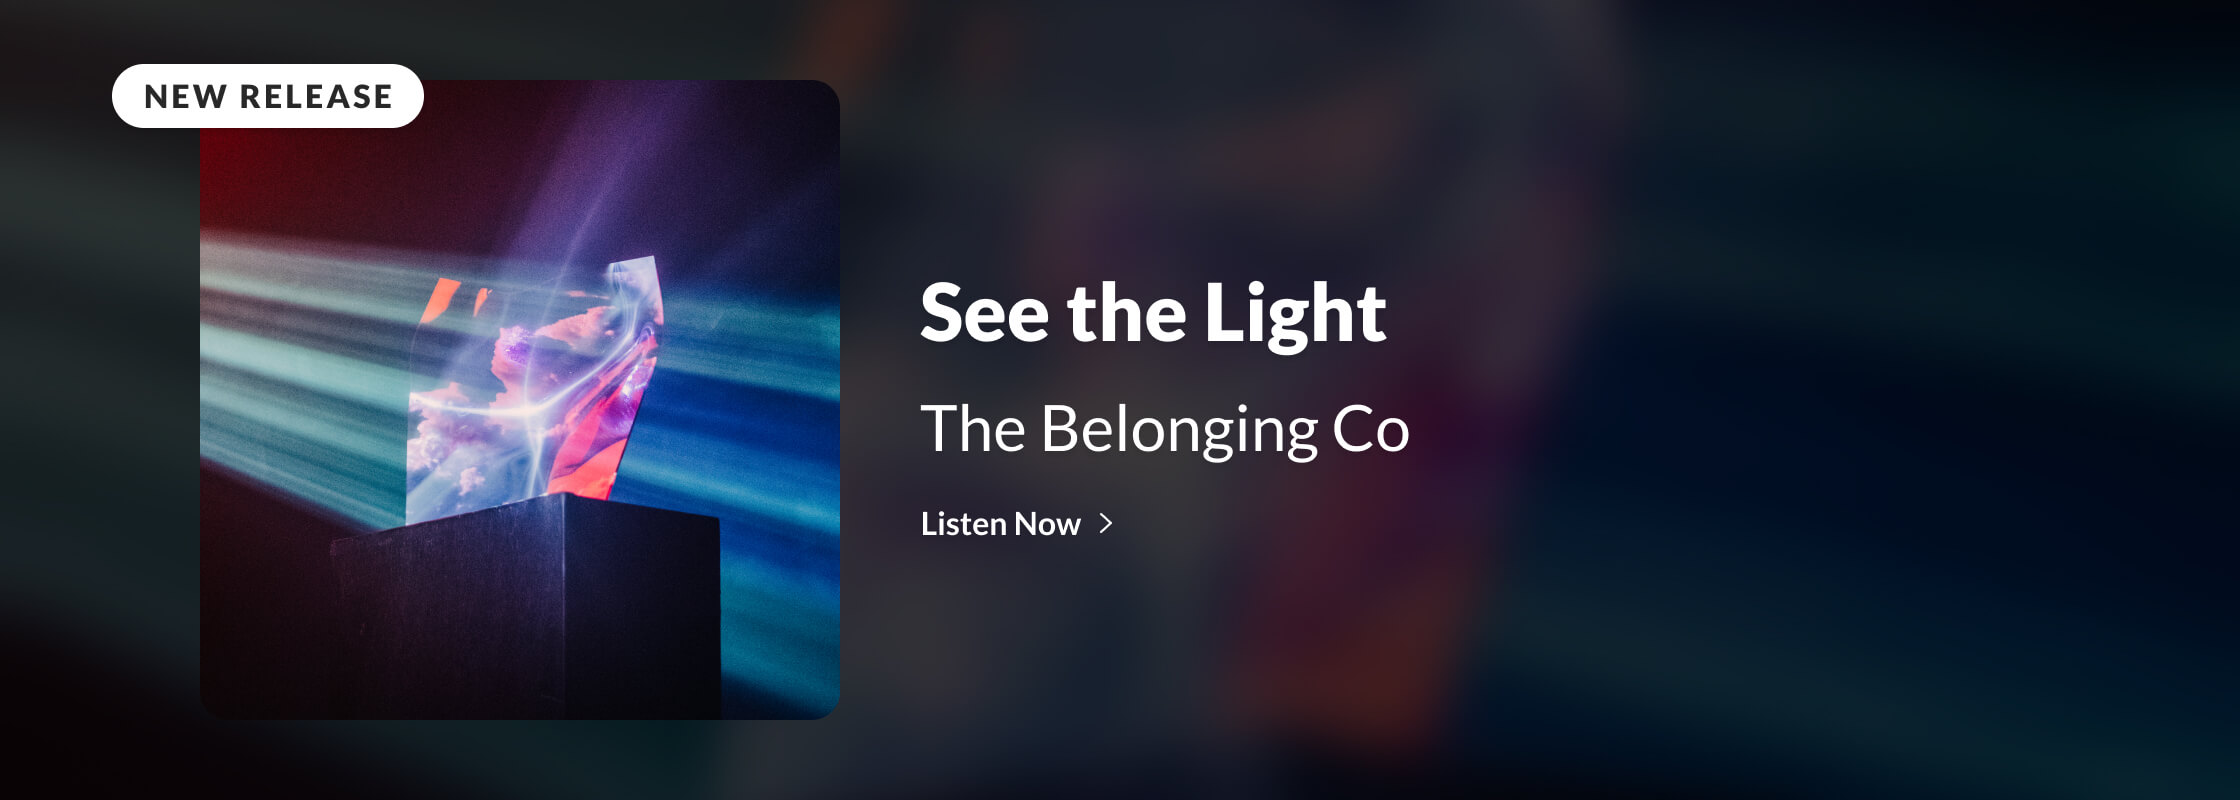 The Belonging Co | See the Light